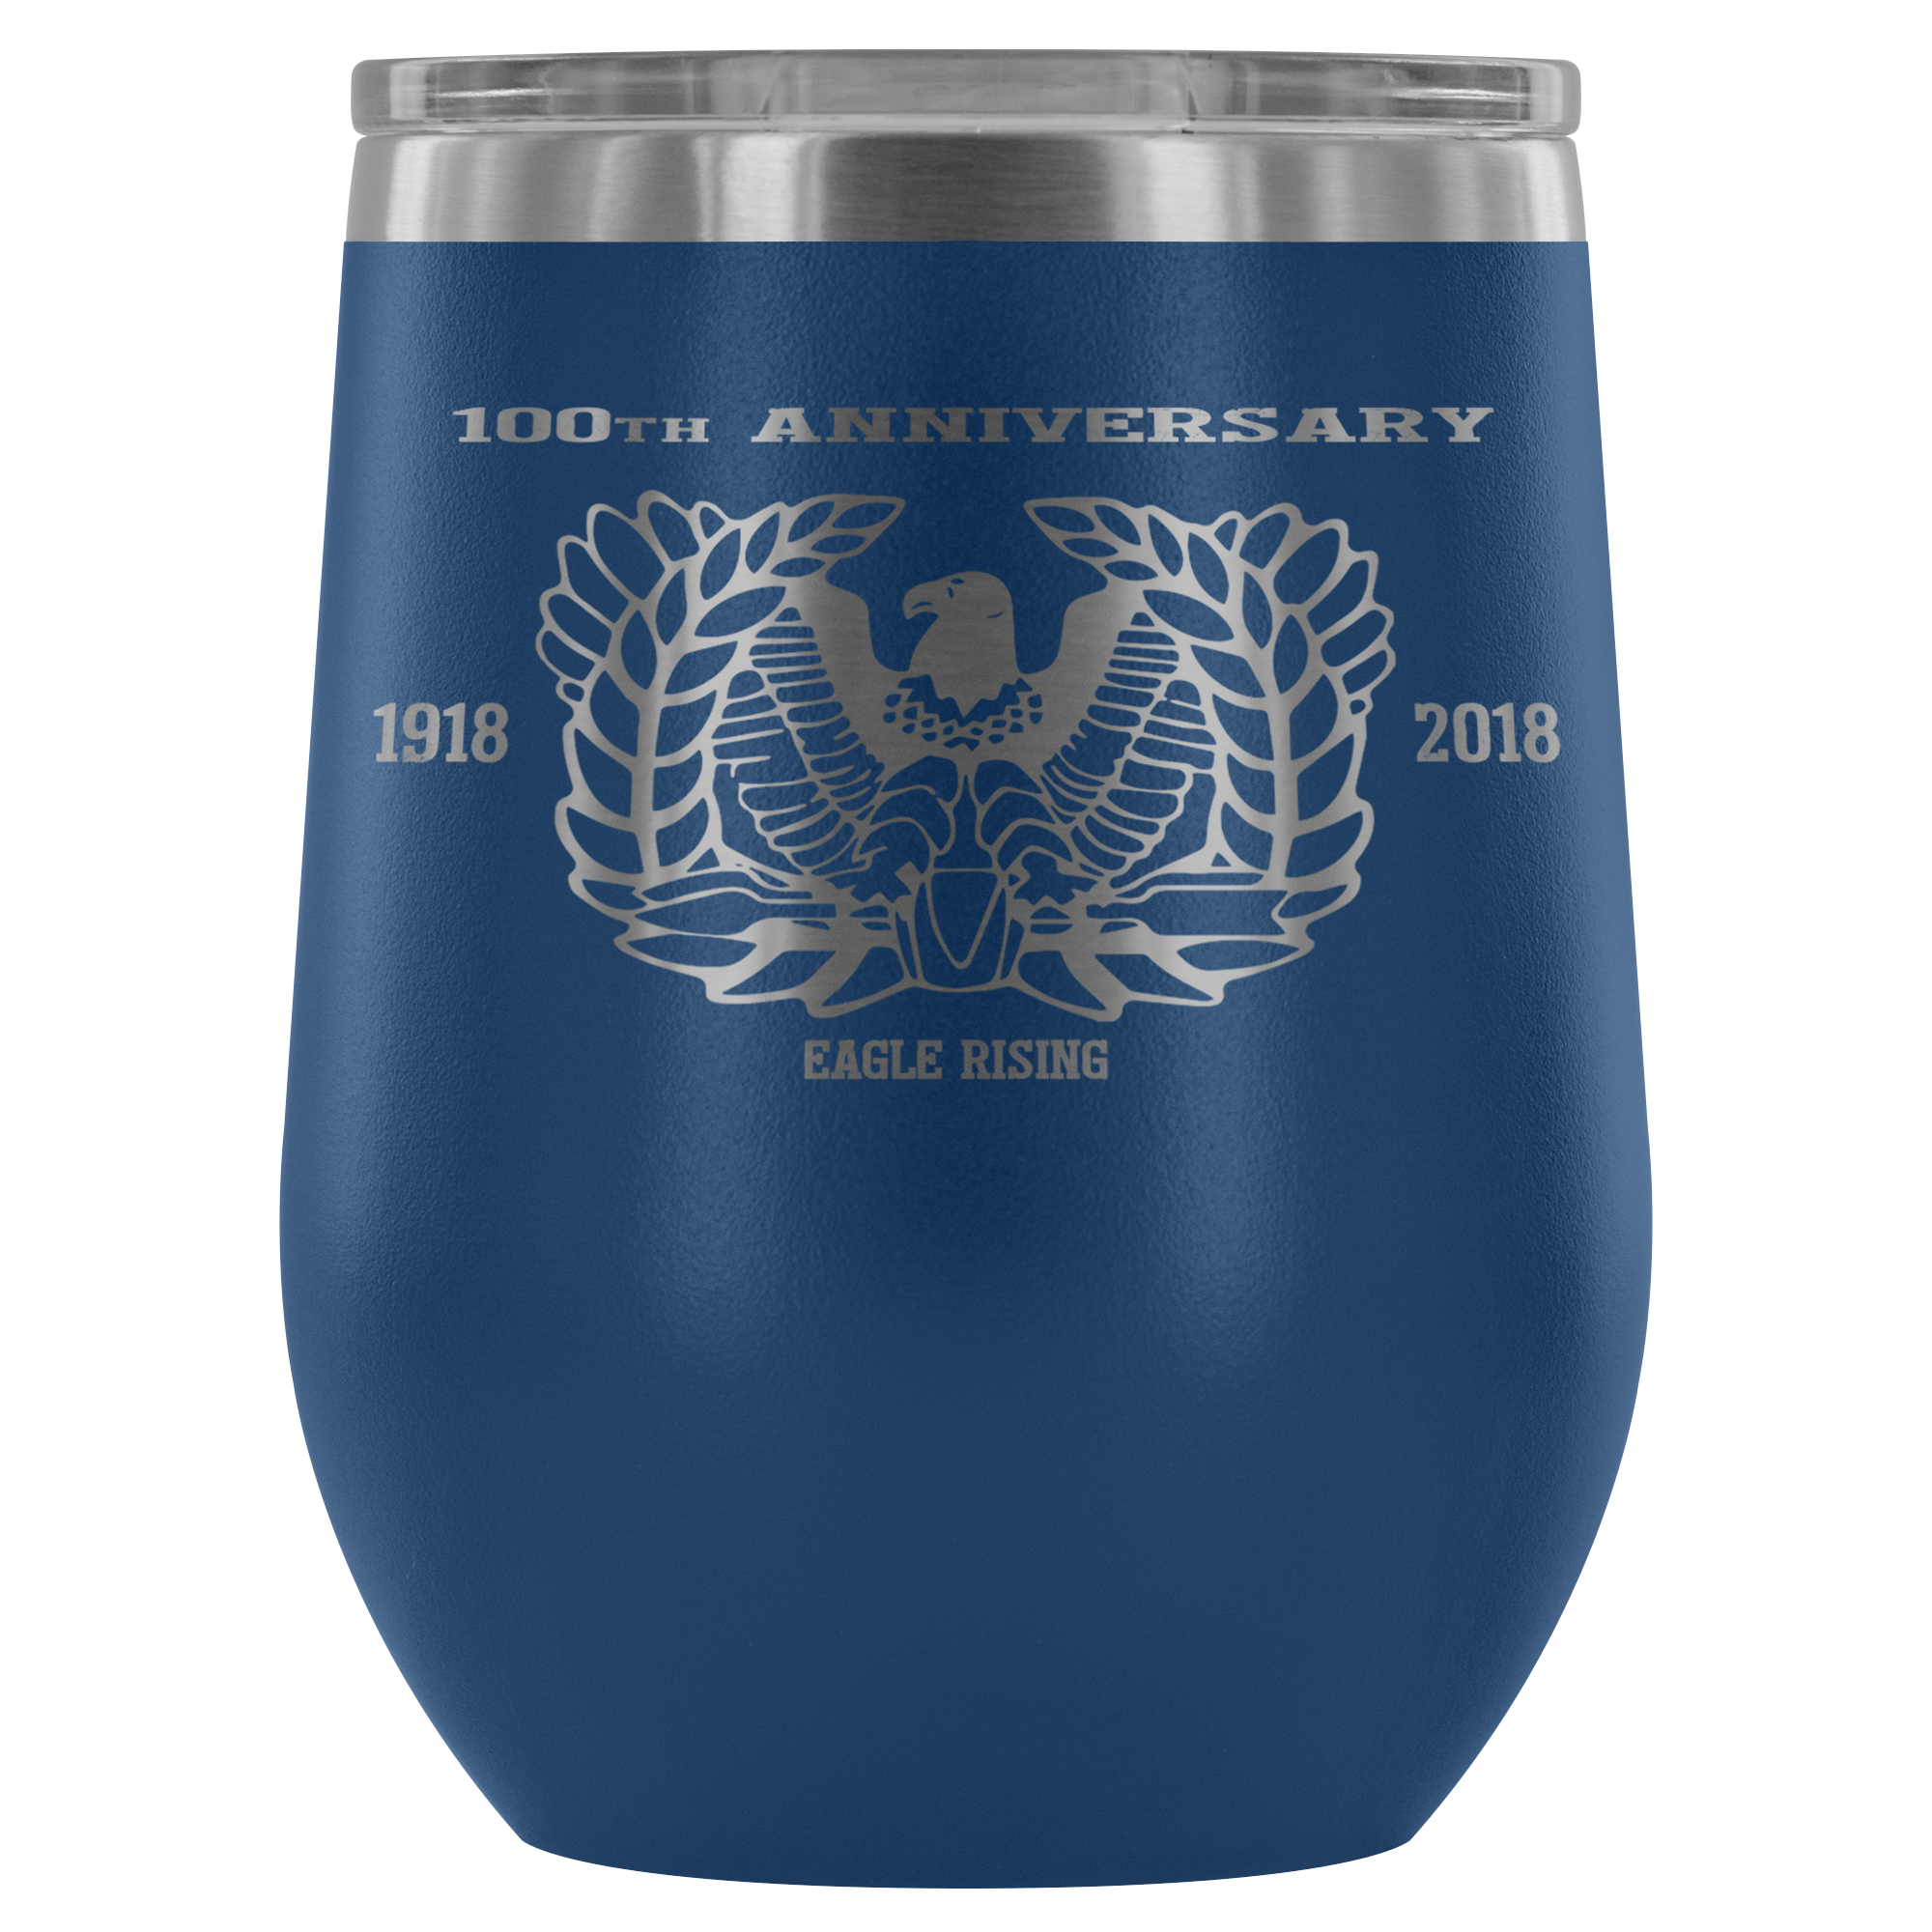 12oz. Stemless Wine Tumblers (100th Anniversary- Eagle Rising)